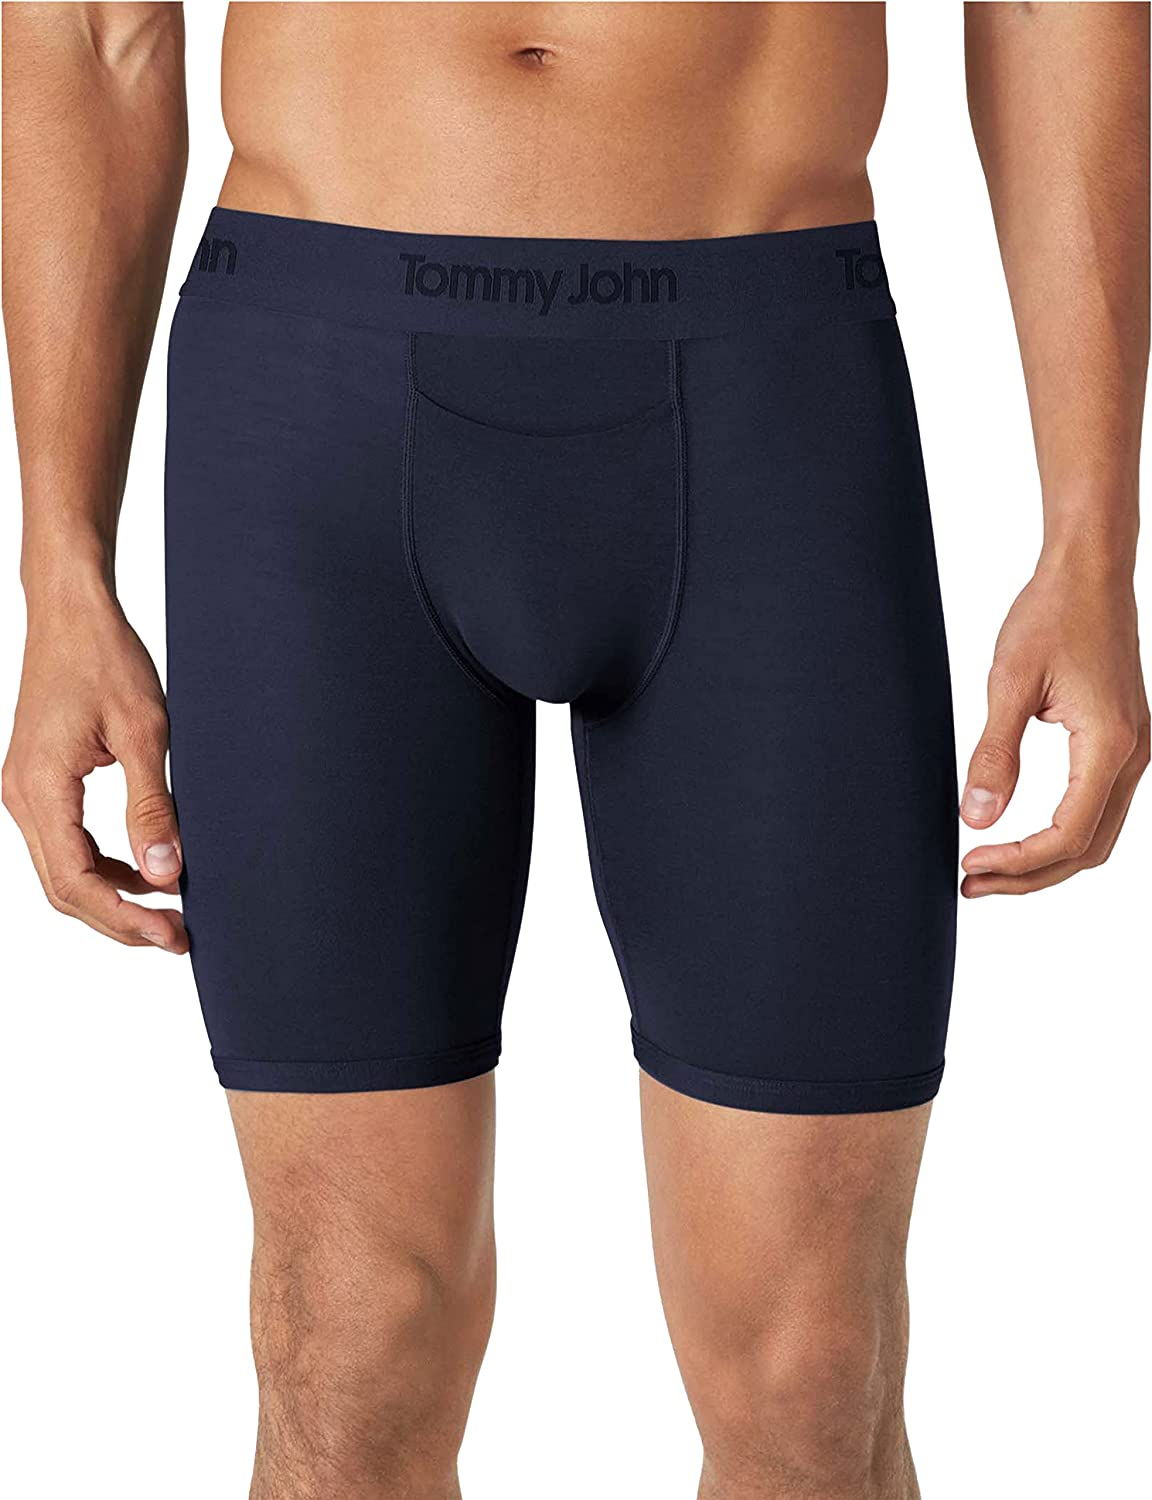 Tommy John Men's Underwear, Boxer Brief, Second Skin Fabric with 8